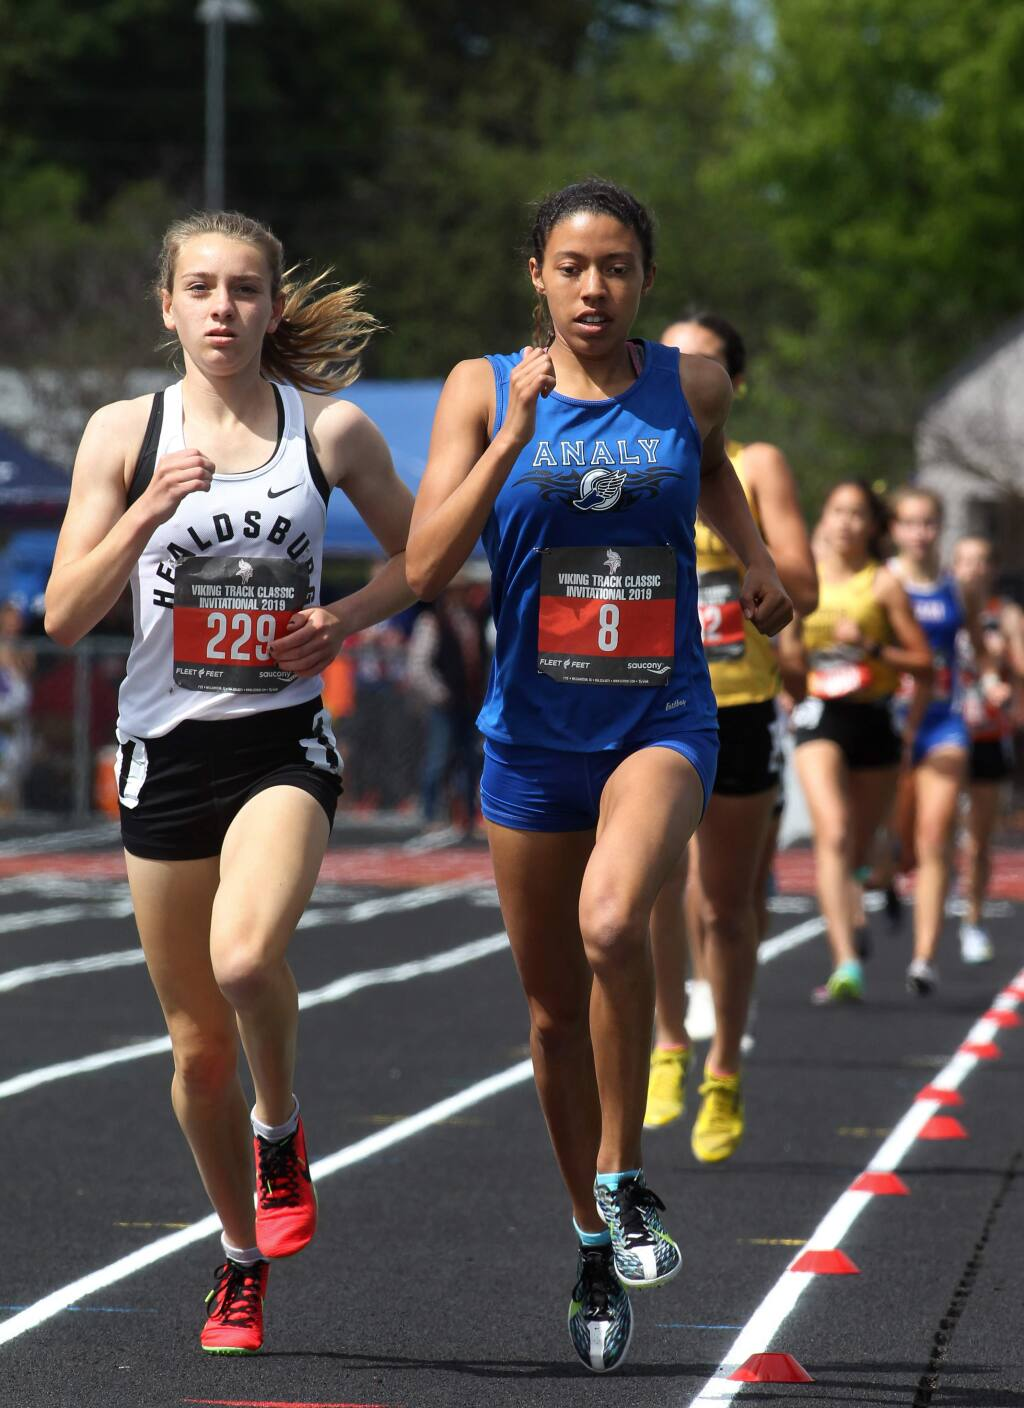 Gabrielle Peterson of Healdsburg High School, left, takes the lead alongside Sierra Atkins of Analy High School, in the 1,600-meter race at the Viking Track Classic at Montgomery High School in Santa Rosa on Saturday, April 20, 2019. (Darryl Bush / For The Press Democrat)